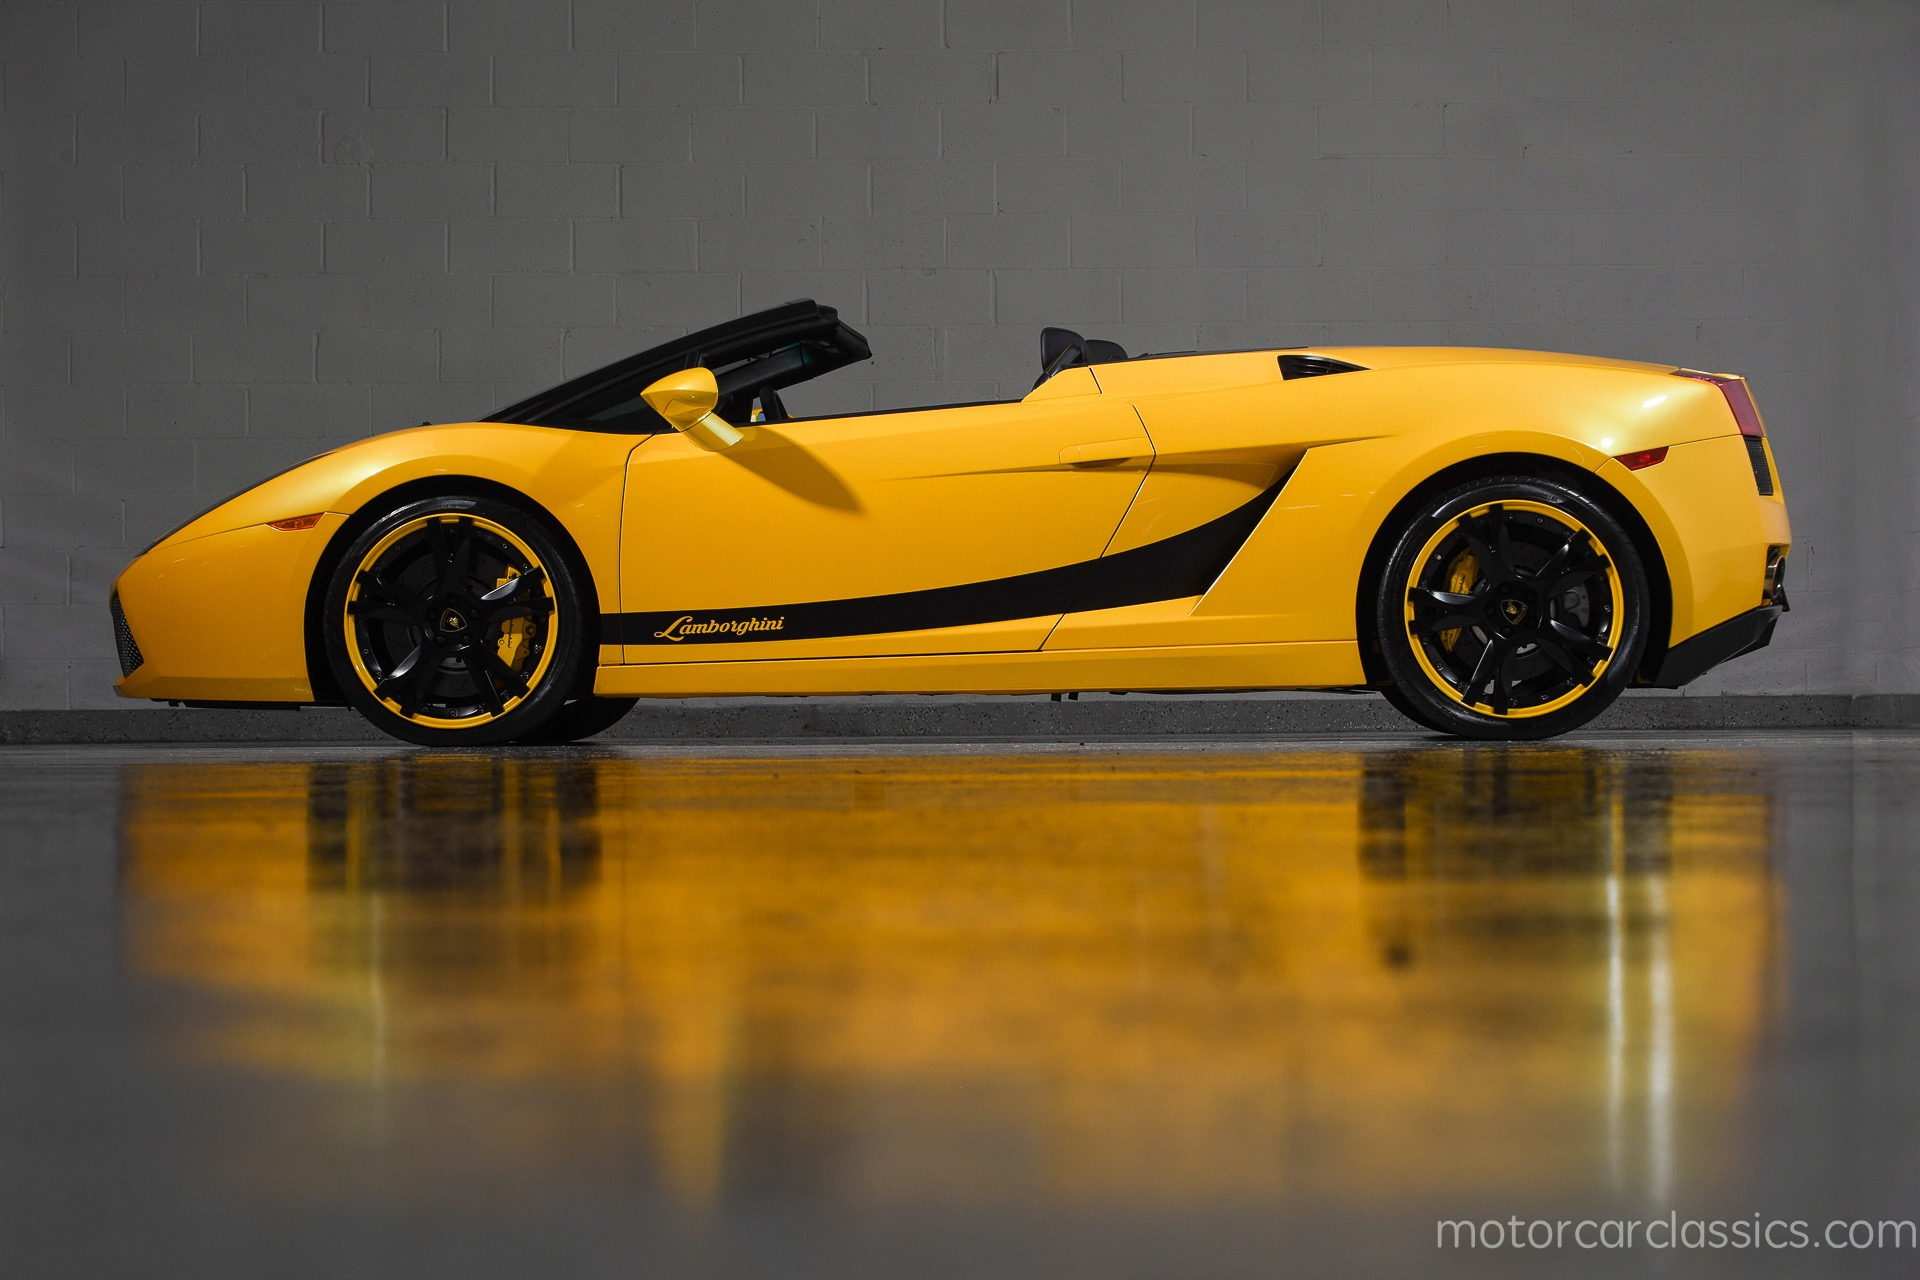 Used 2008 Lamborghini Gallardo Spyder For Sale 119 900 Motorcar